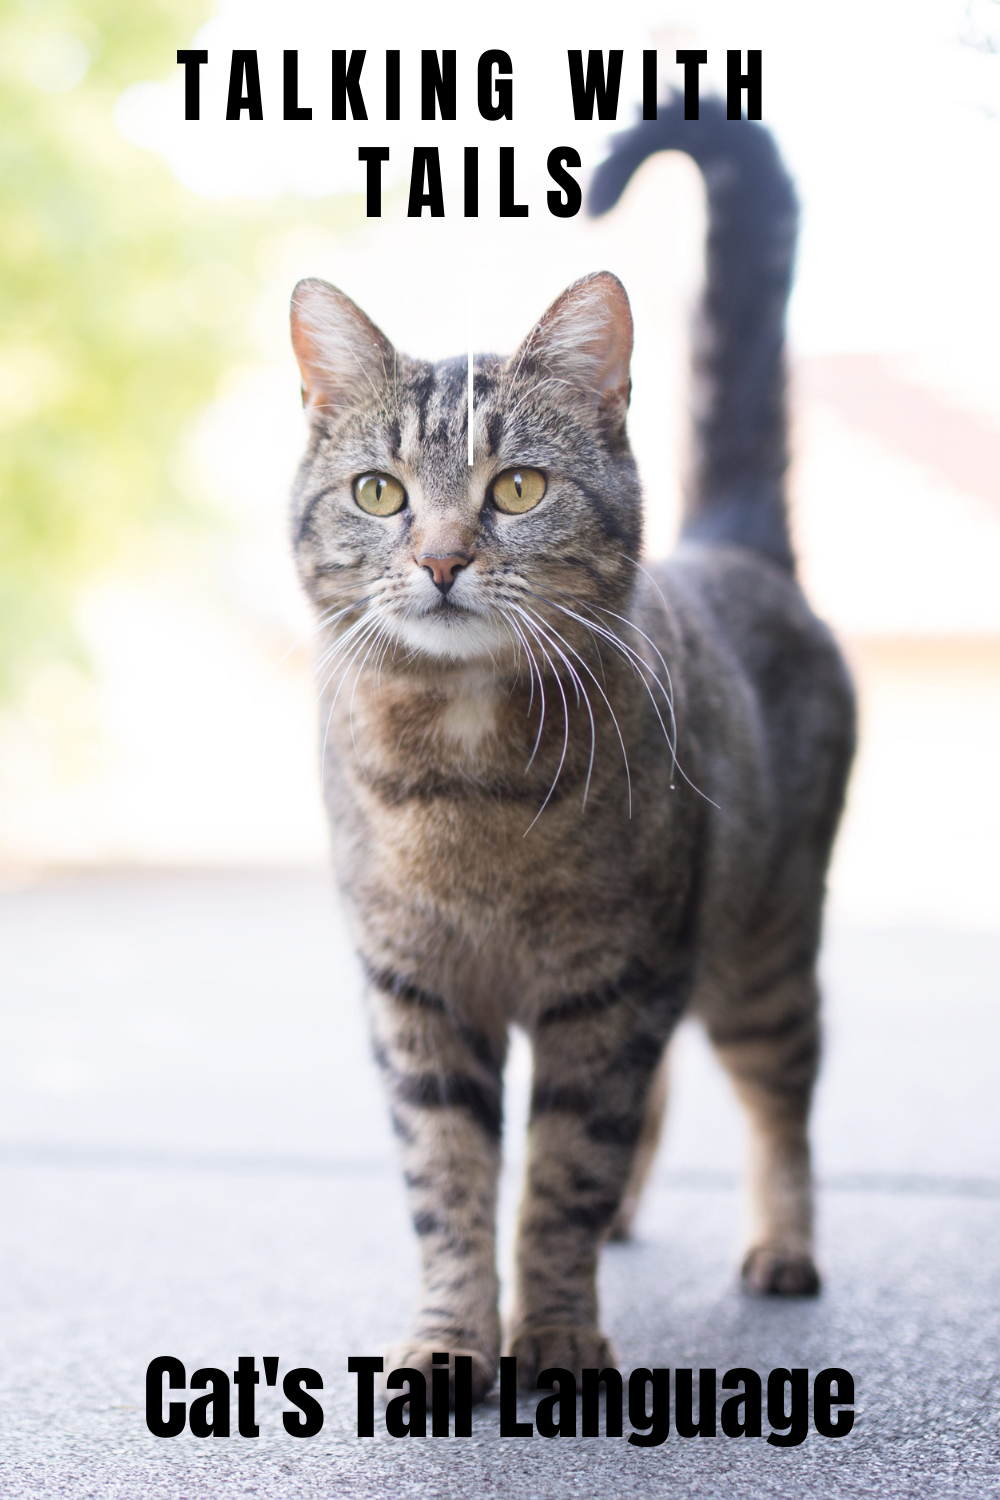 What Your Cat Is Telling With Their Tail Cats Cat Language Cat Tail Language